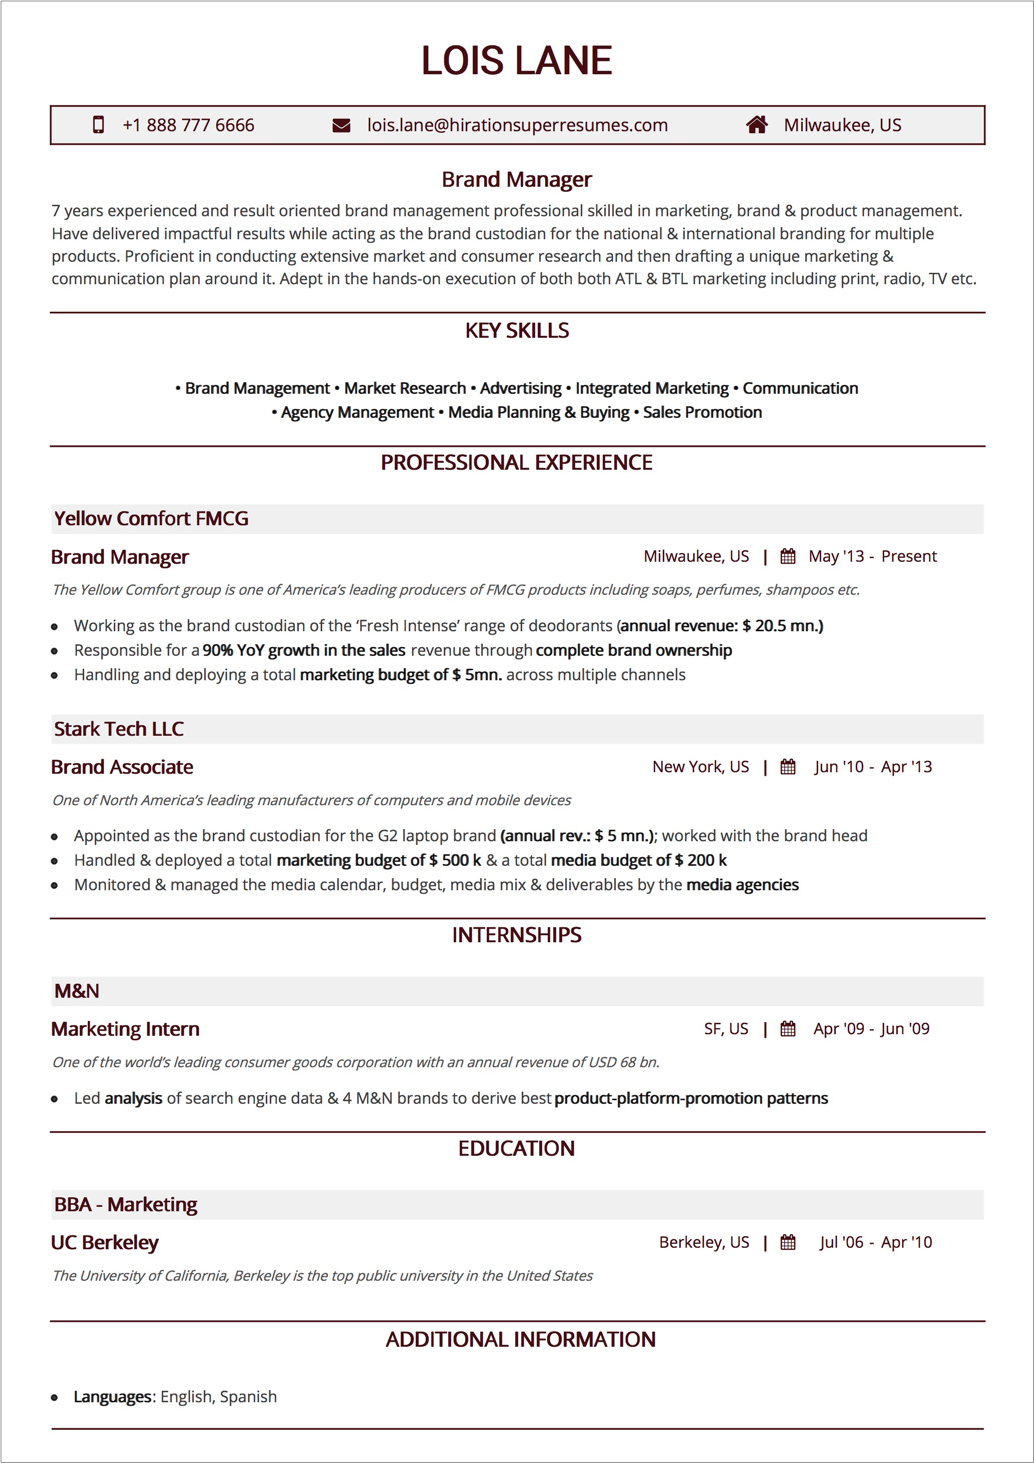 Resume Format : 2018 Guide with Examples